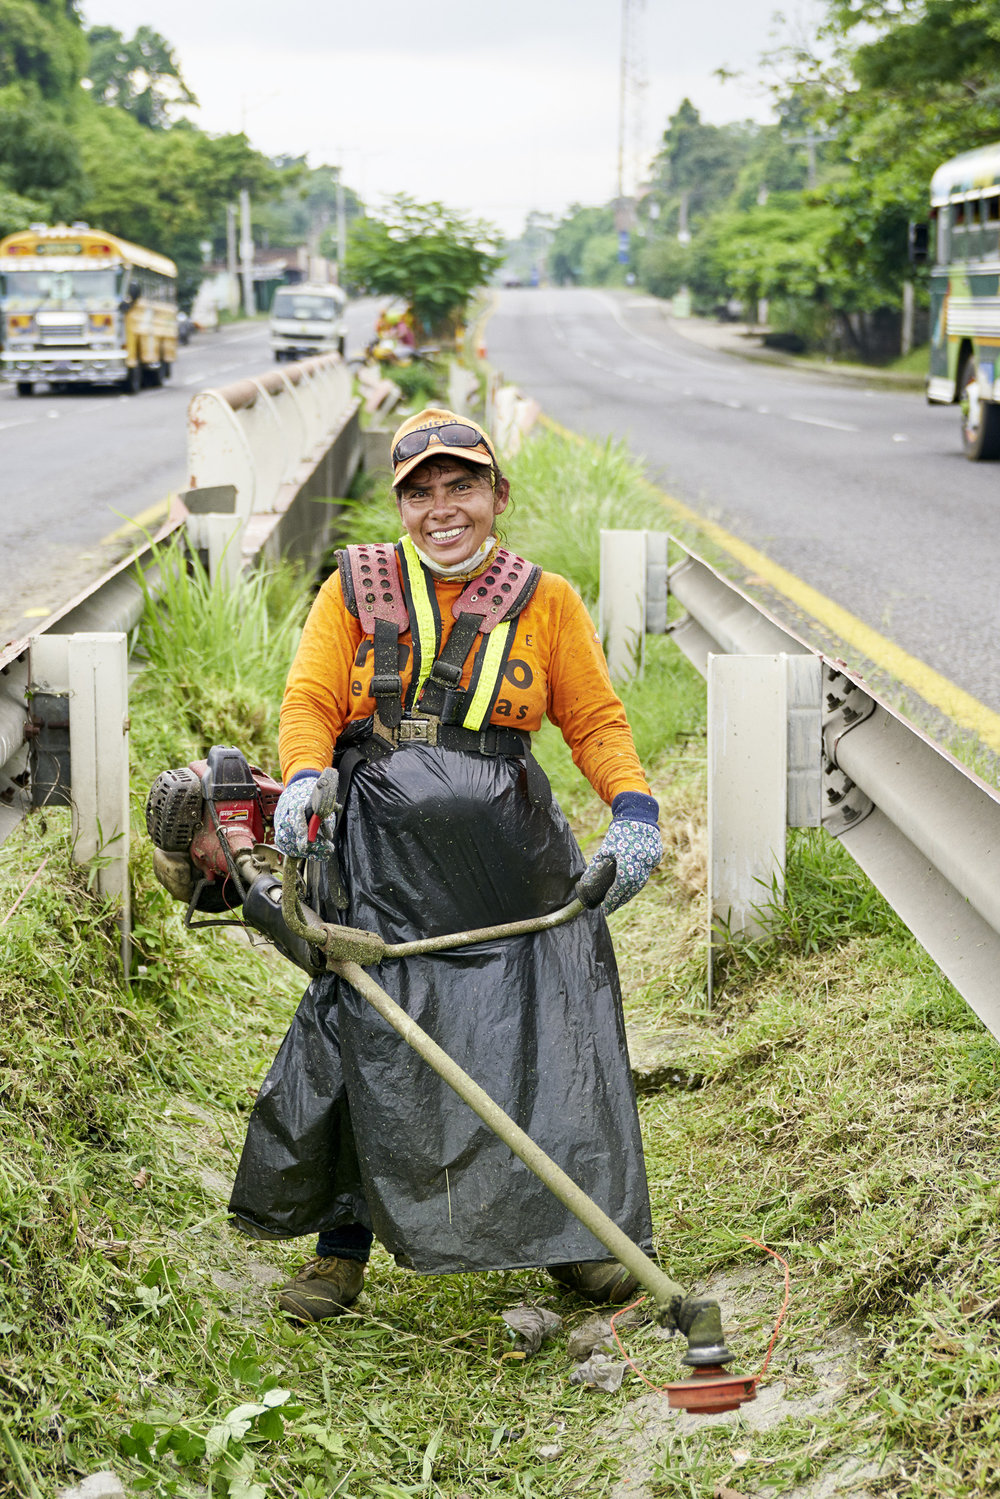 Inequalities_El_Salvador_Road-maintenance-women_20160723_El_Salvador_DSC00966.jpg